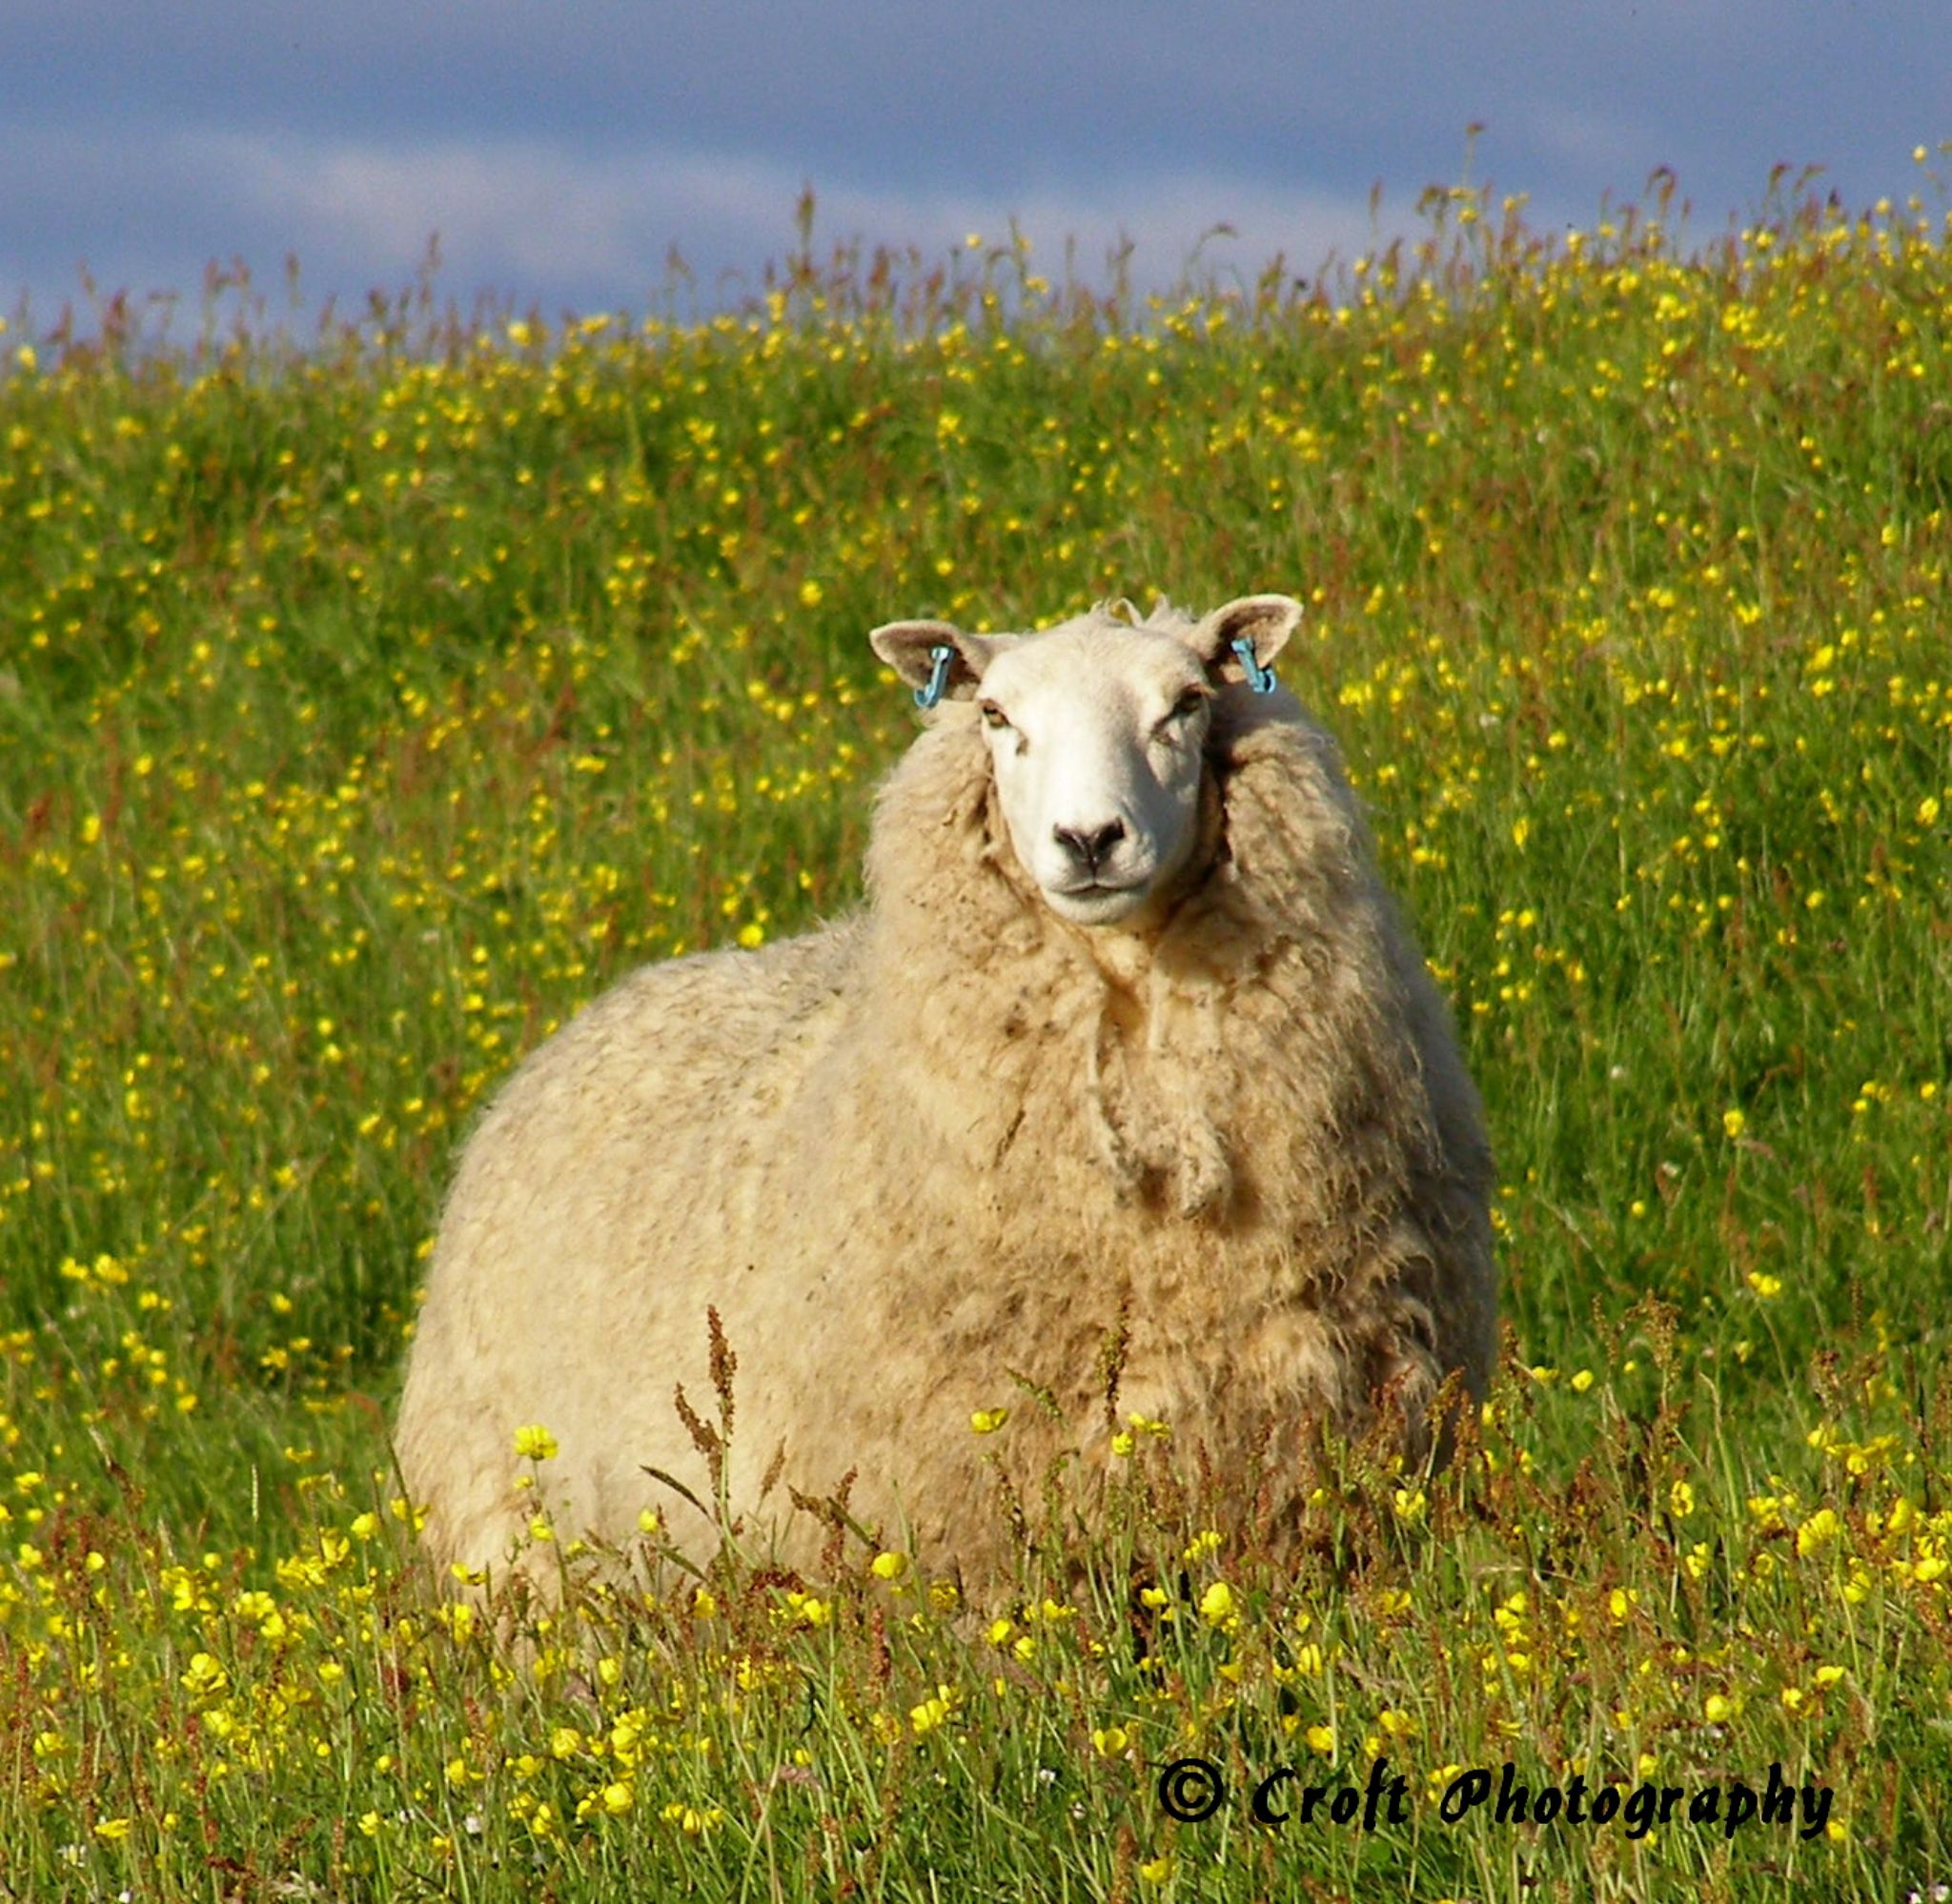 Sheep in Buttercup Field by Kate Ali